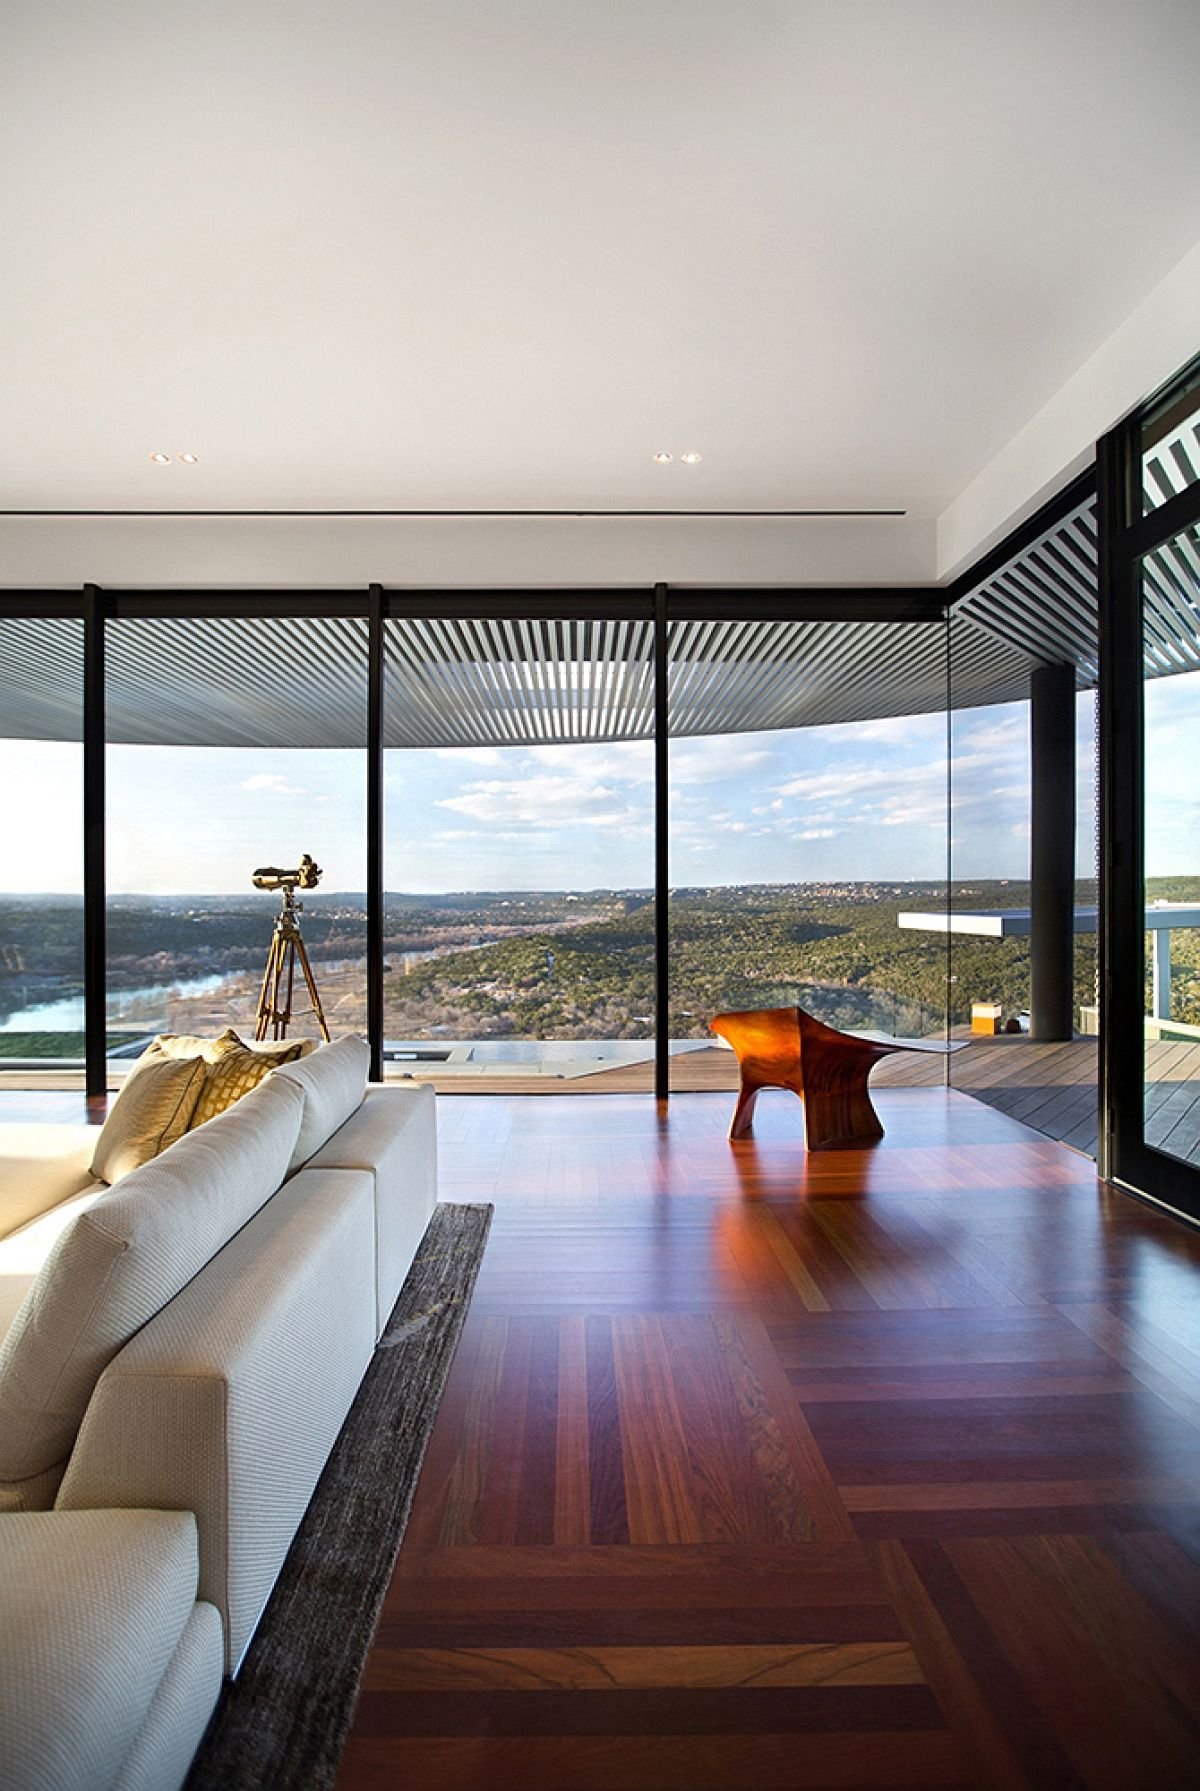 Floor-to-ceiling glass window offer a stunning view of Lake Austin and the rolling hills